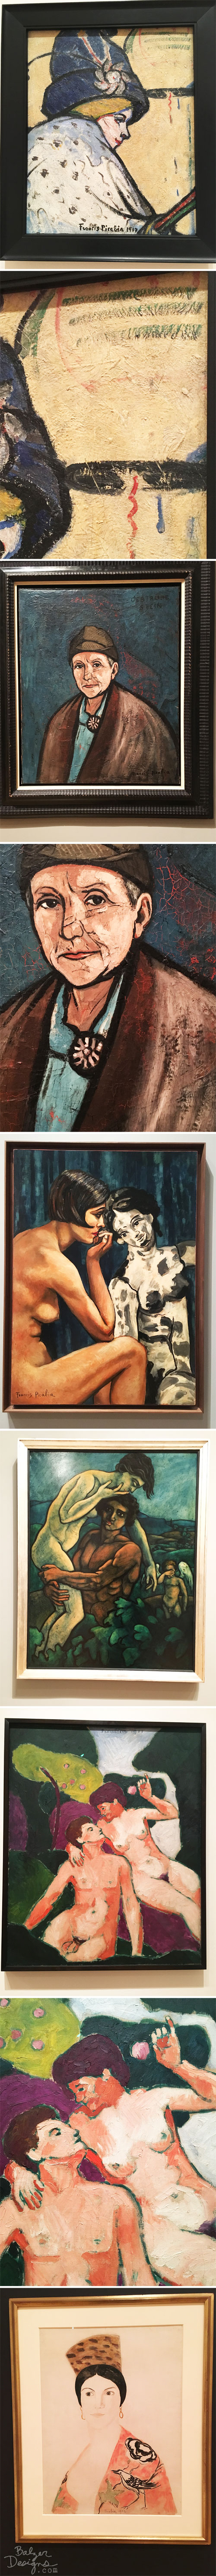 From the Balzer Designs Blog: Picabia at MoMA: Part One